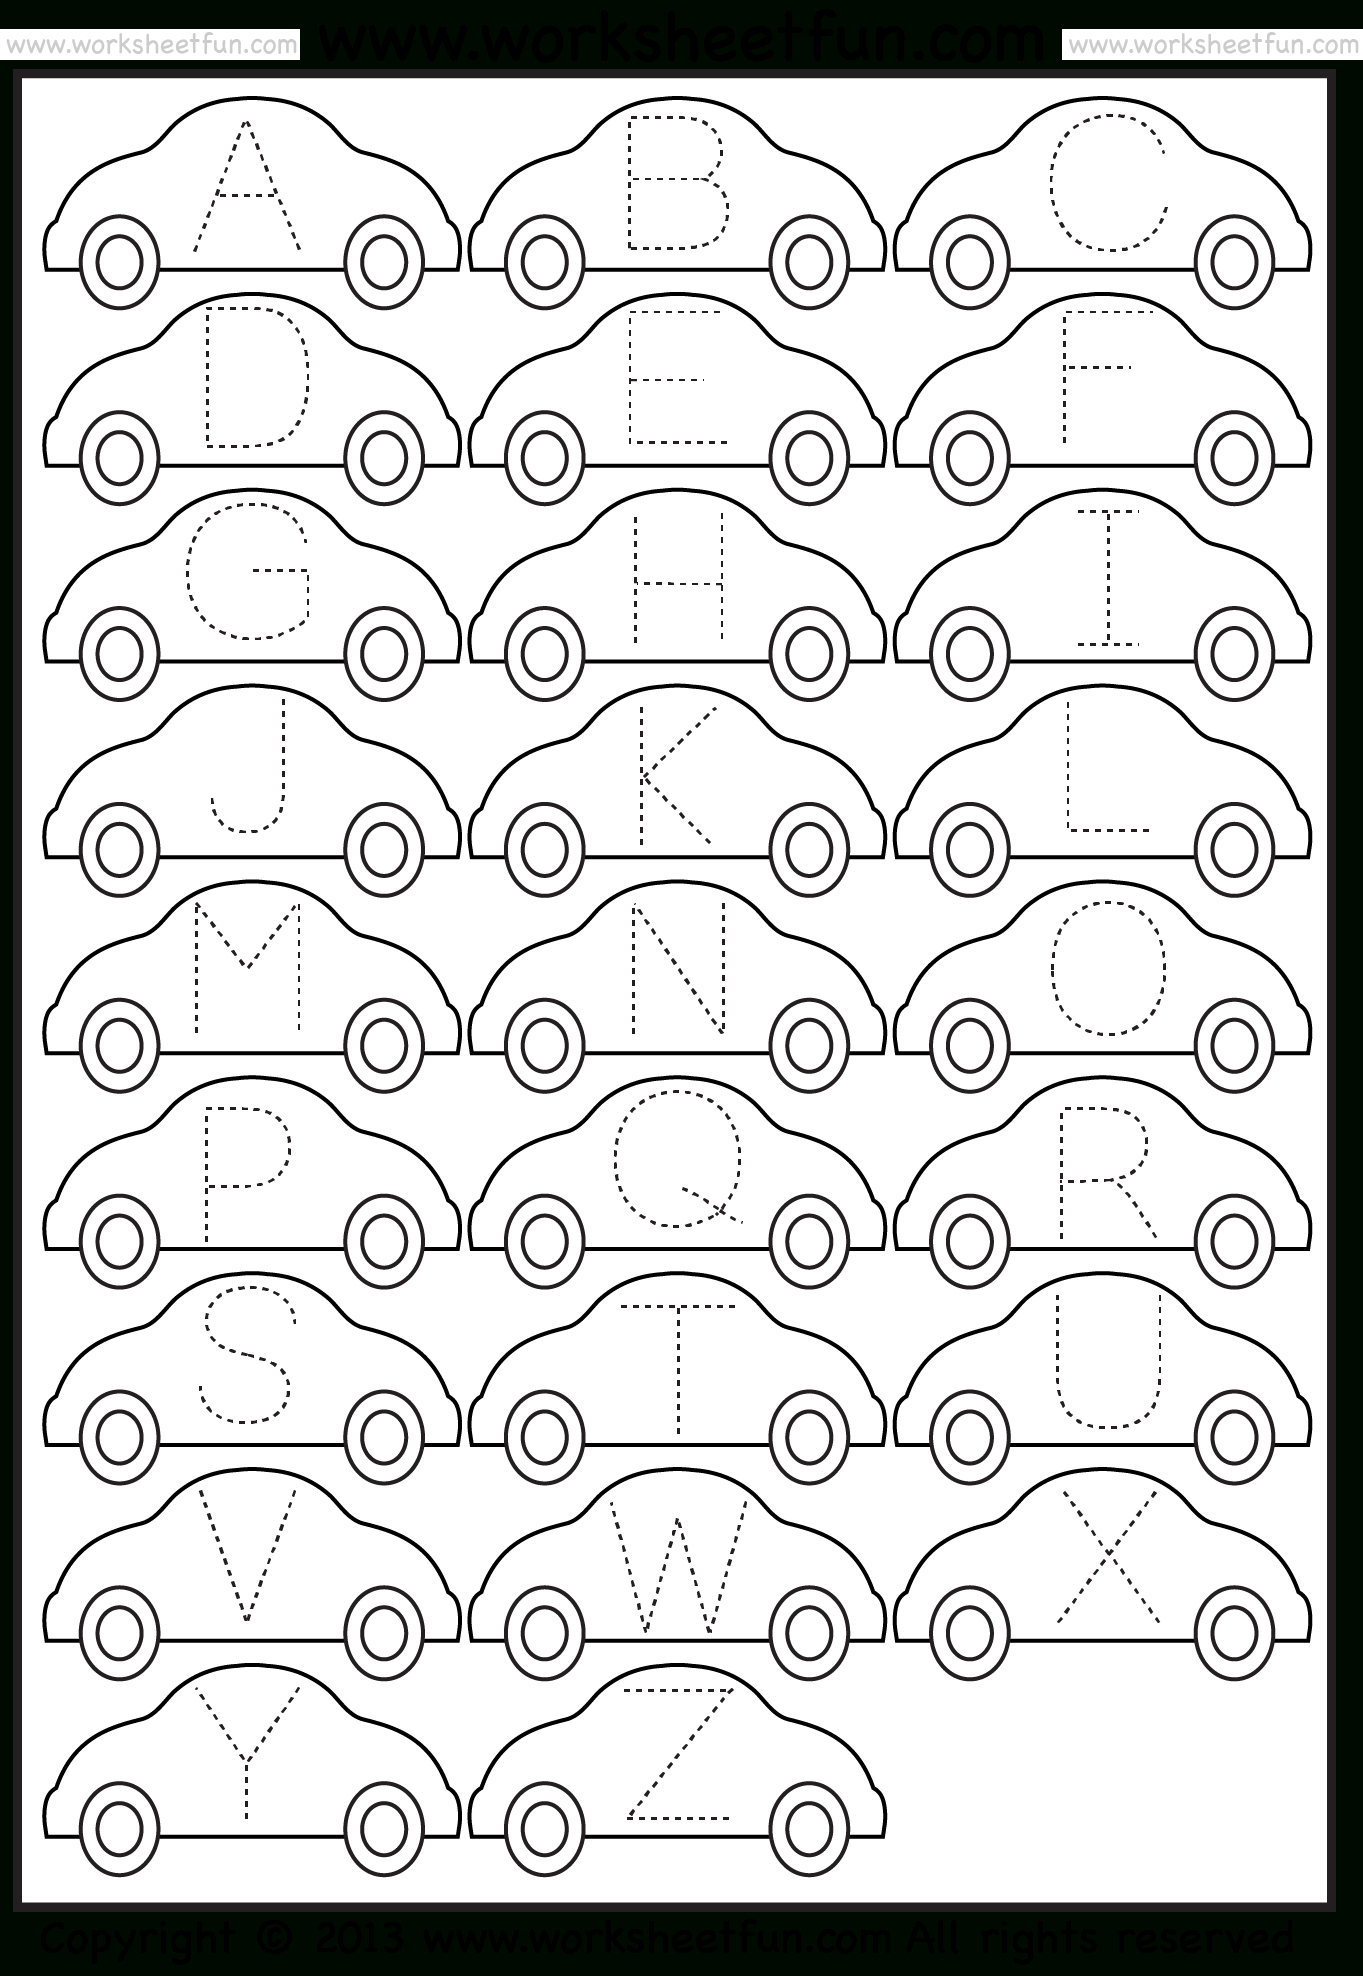 Tracing – Letter Tracing / Free Printable Worksheets – Worksheetfun - Free Printable Alphabet Pages